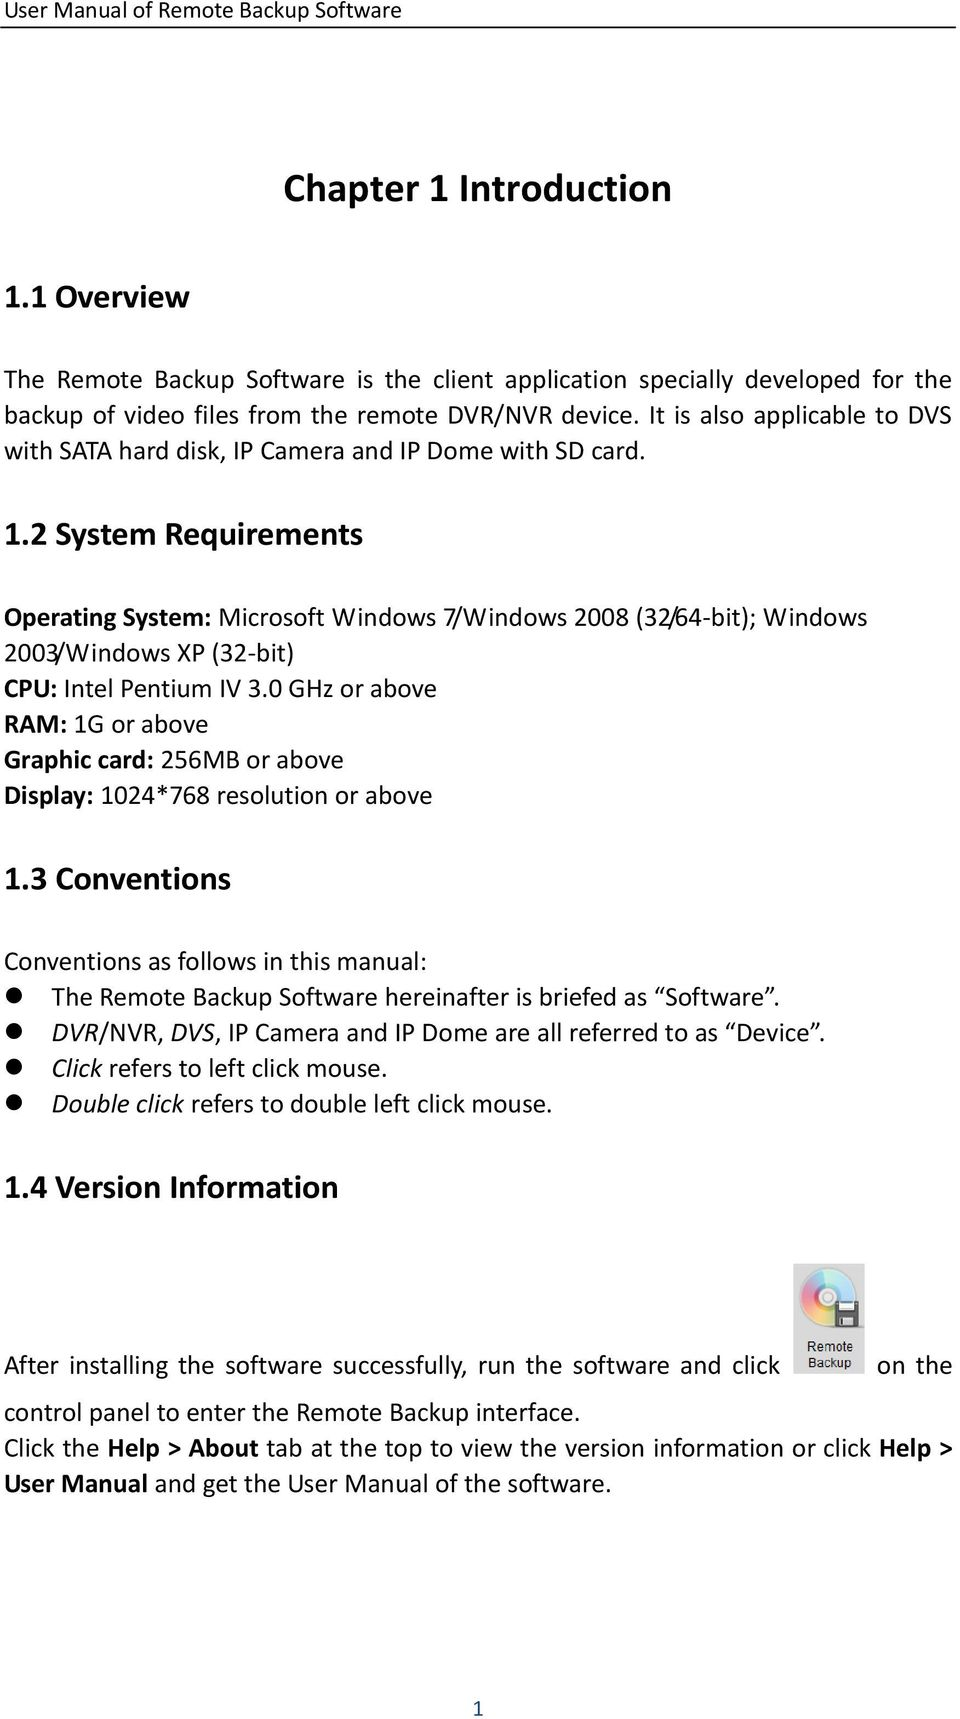 2 System Requirements Operating System: Microsoft Windows 7/Windows 2008 (32/64-bit); Windows 2003/Windows XP (32-bit) CPU: Intel Pentium IV 3.